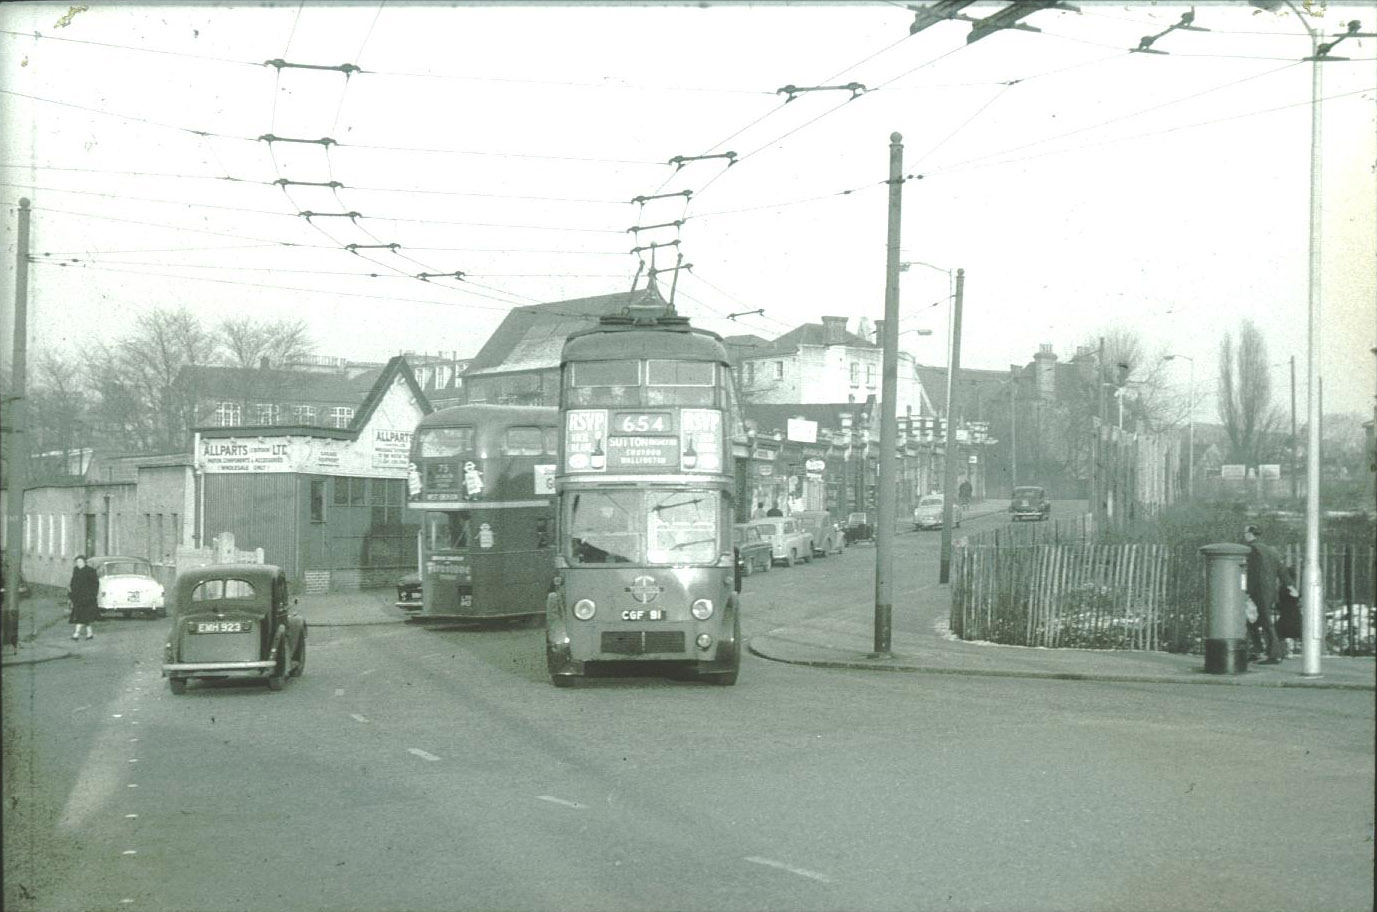 Trolleybus in Station Road, West Croydon